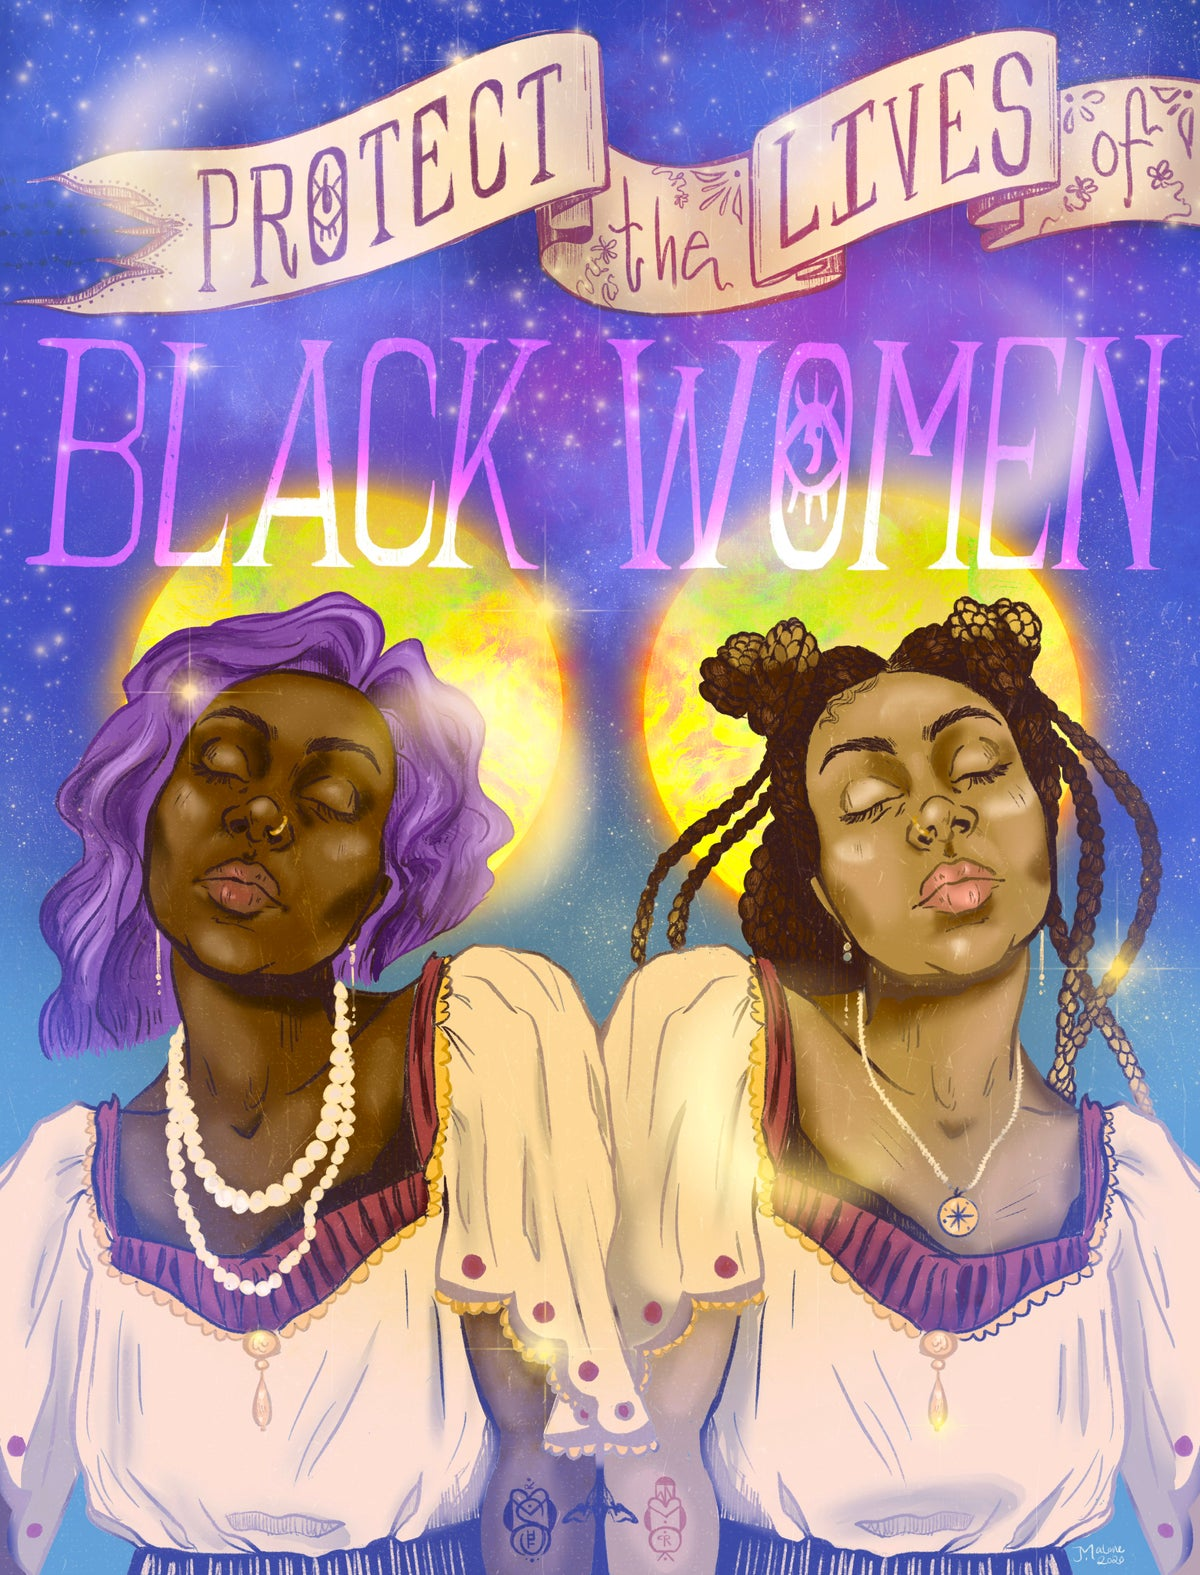 Protect Black Women (Donations)